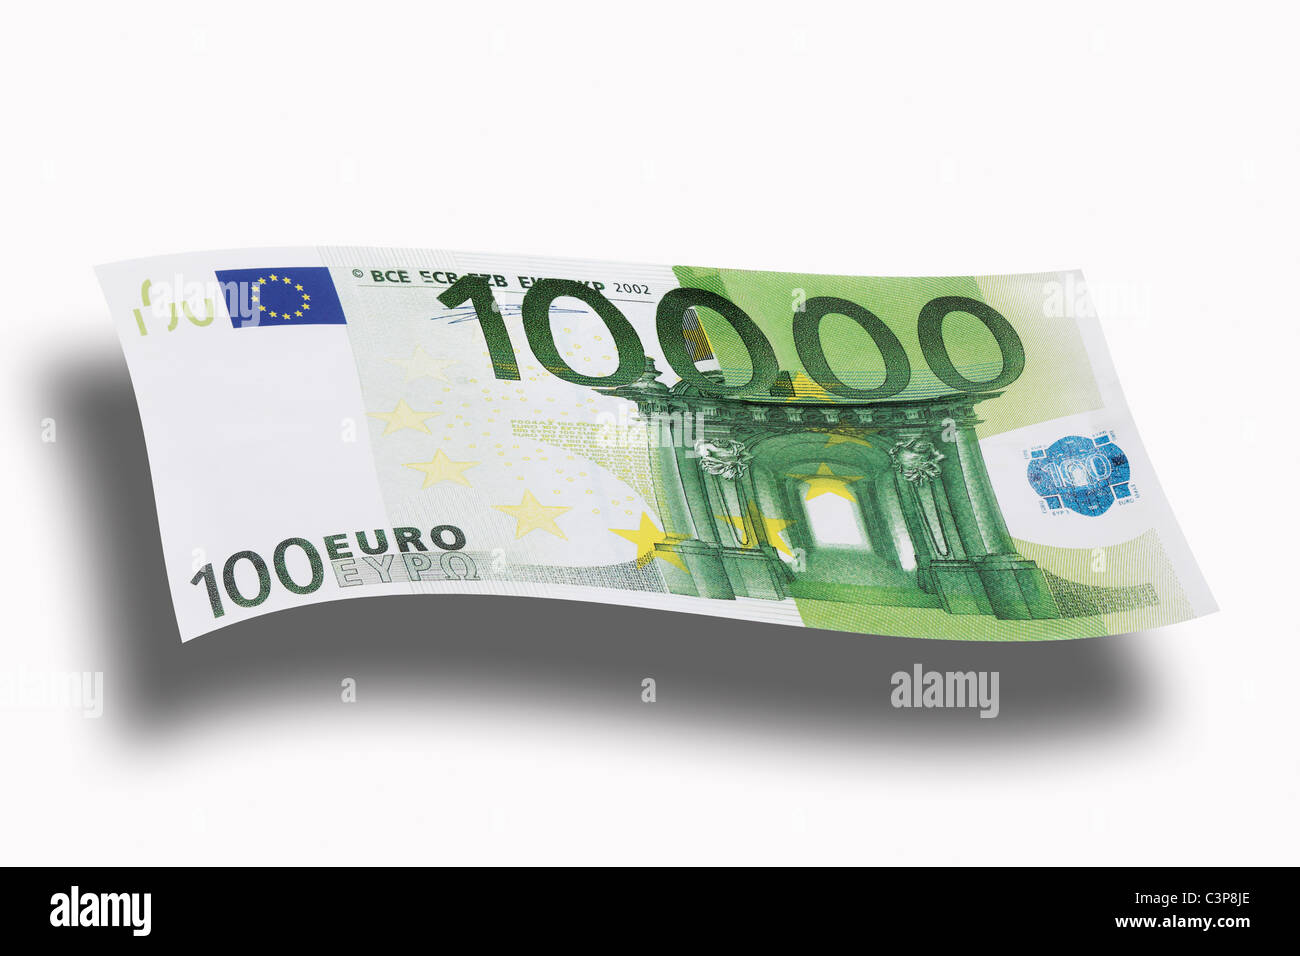 10000 euro note on ehite background close up stock photo royalty free image 36754438 alamy. Black Bedroom Furniture Sets. Home Design Ideas